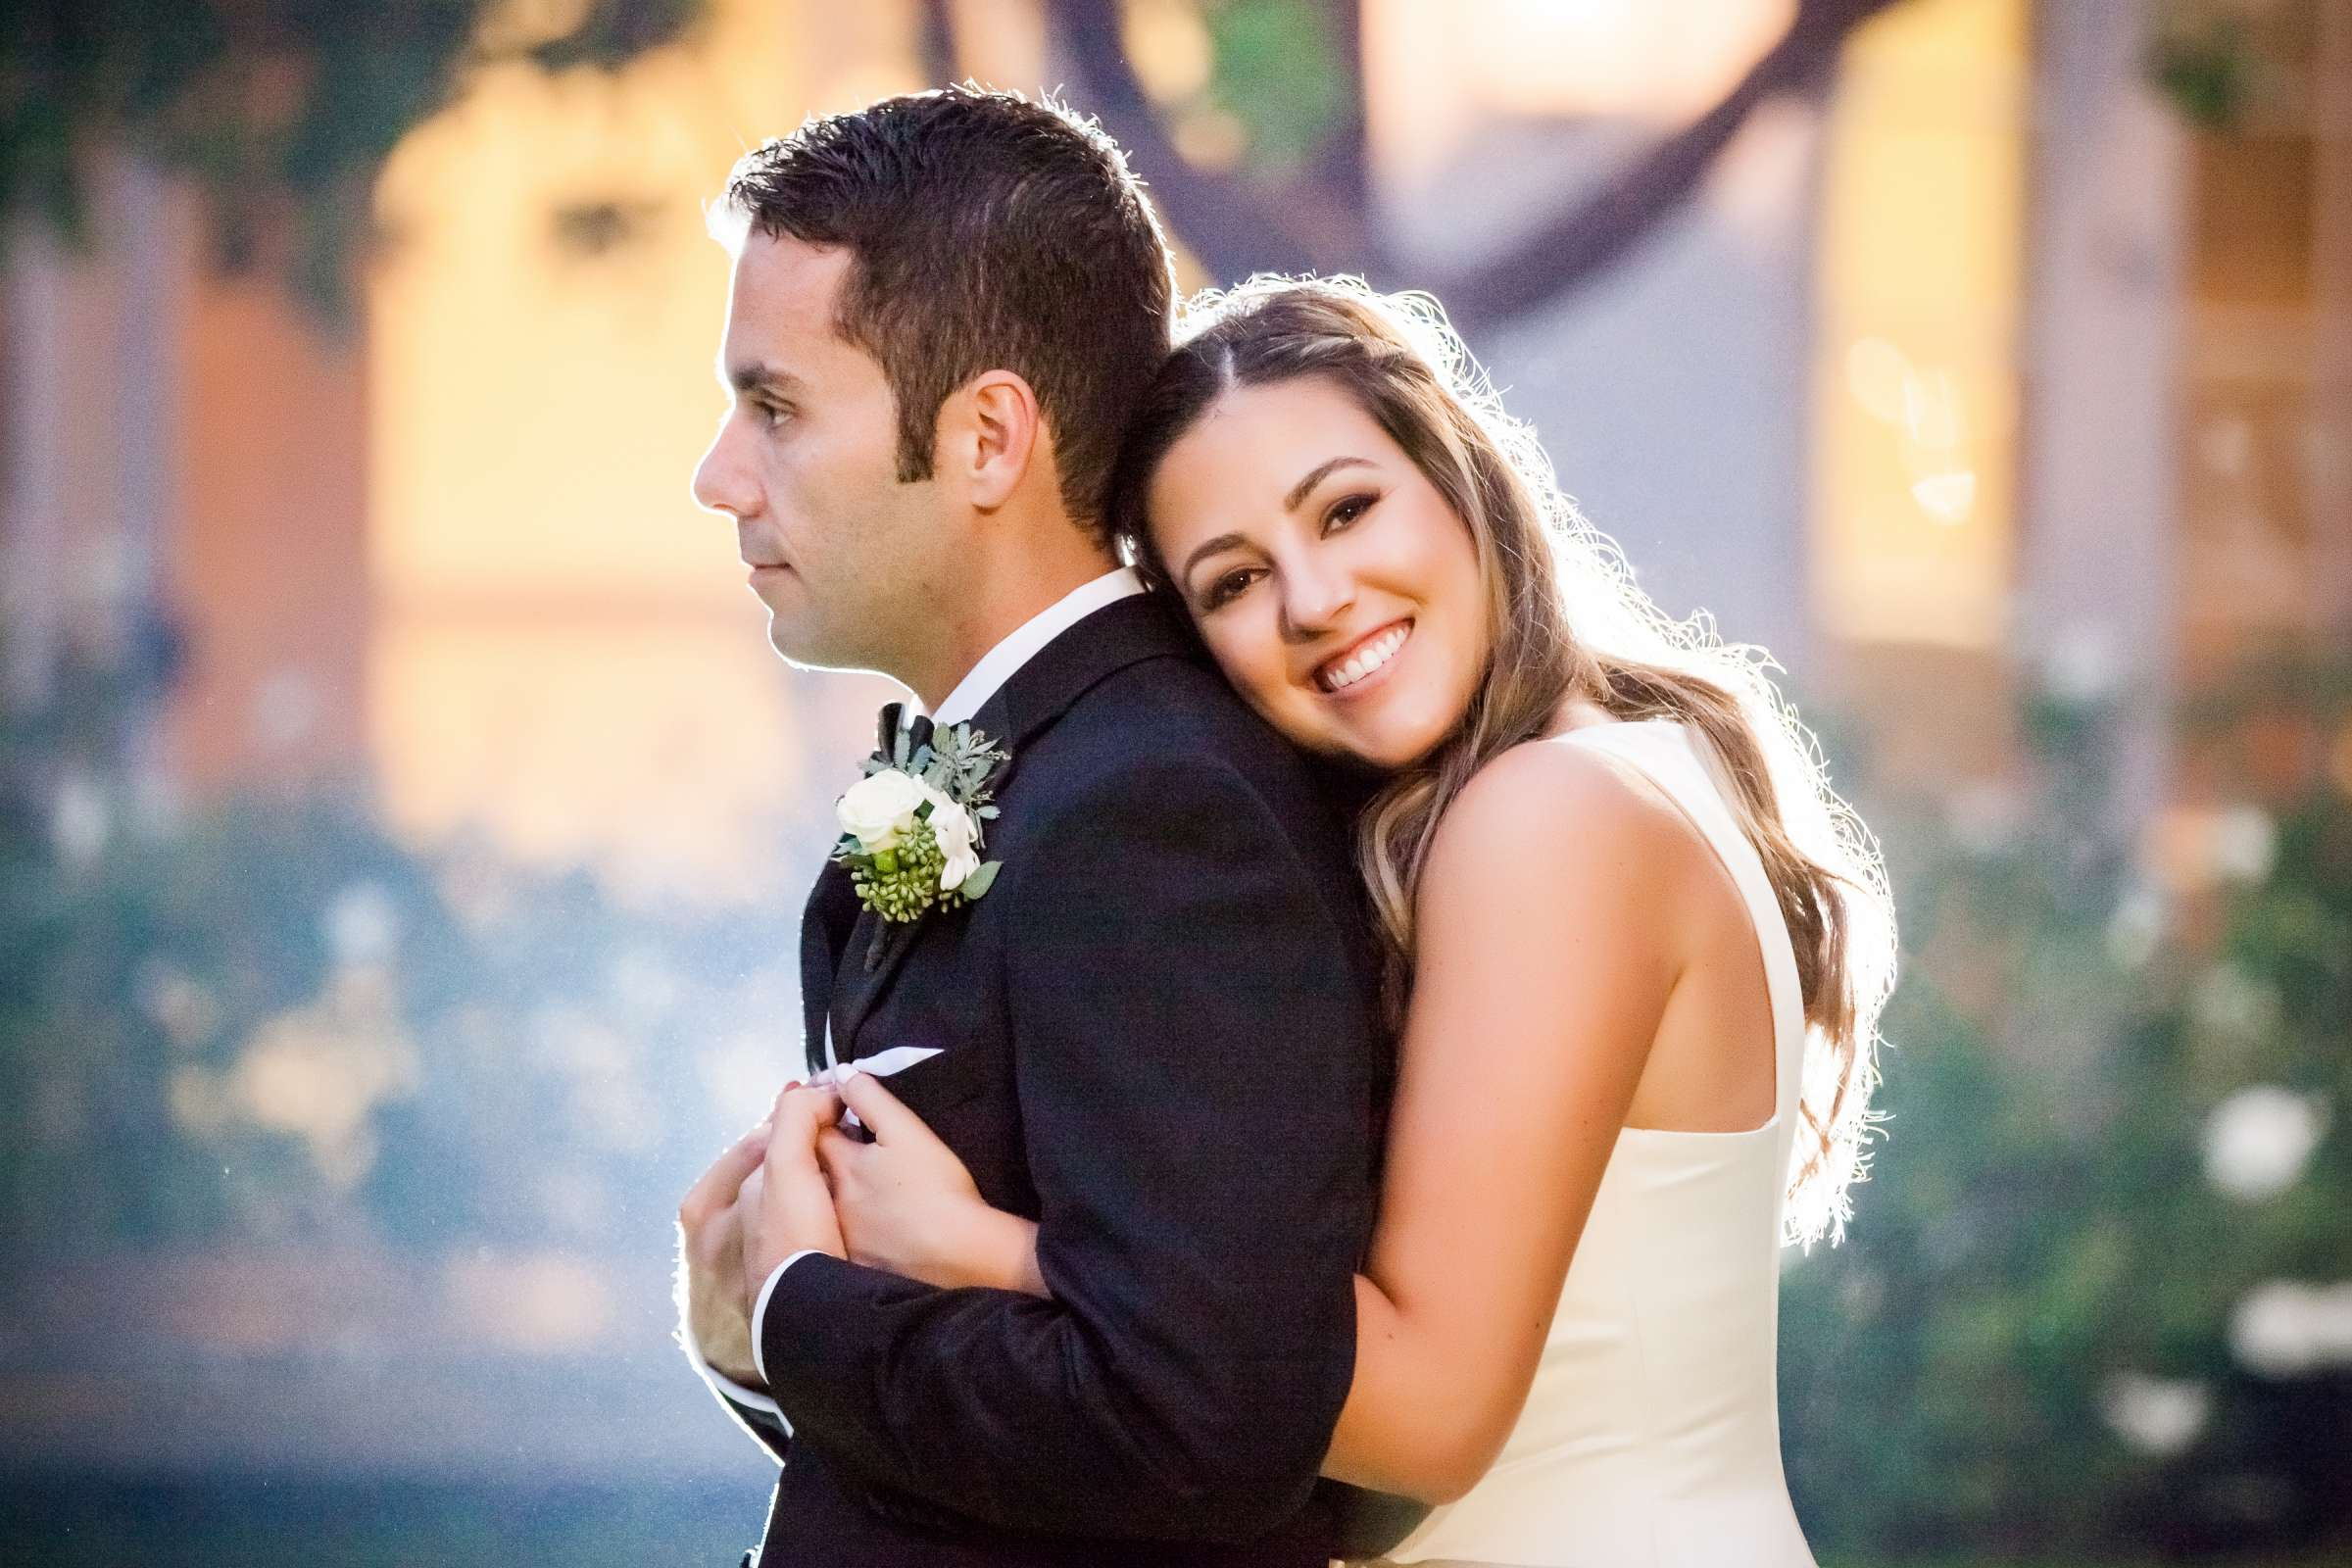 Rancho Bernardo Inn Wedding coordinated by Très Chic Events, Stefania and Nicholas Wedding Photo #3 by True Photography